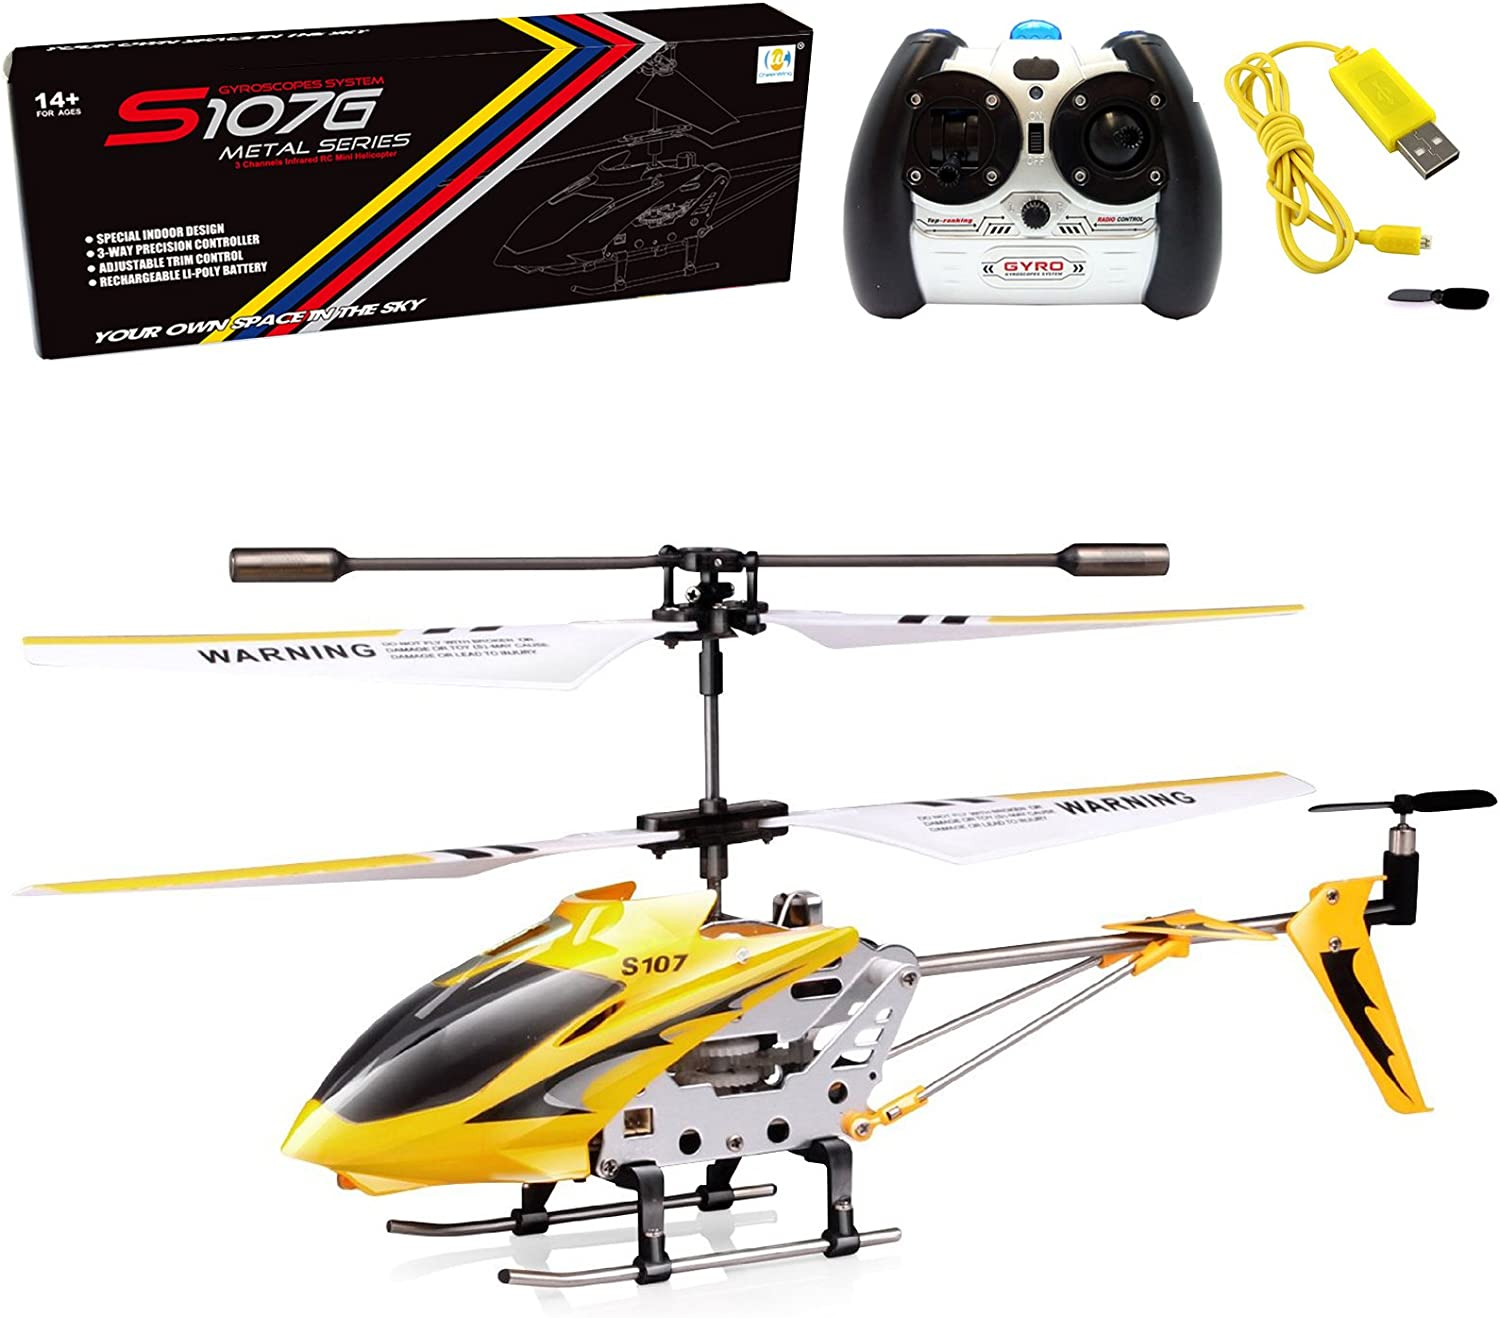 Amazon.com: Cheerwing S107/S107G Phantom 3CH 3.5 Channel Mini RC Helicopter with Gyro Yellow: Toys & Games